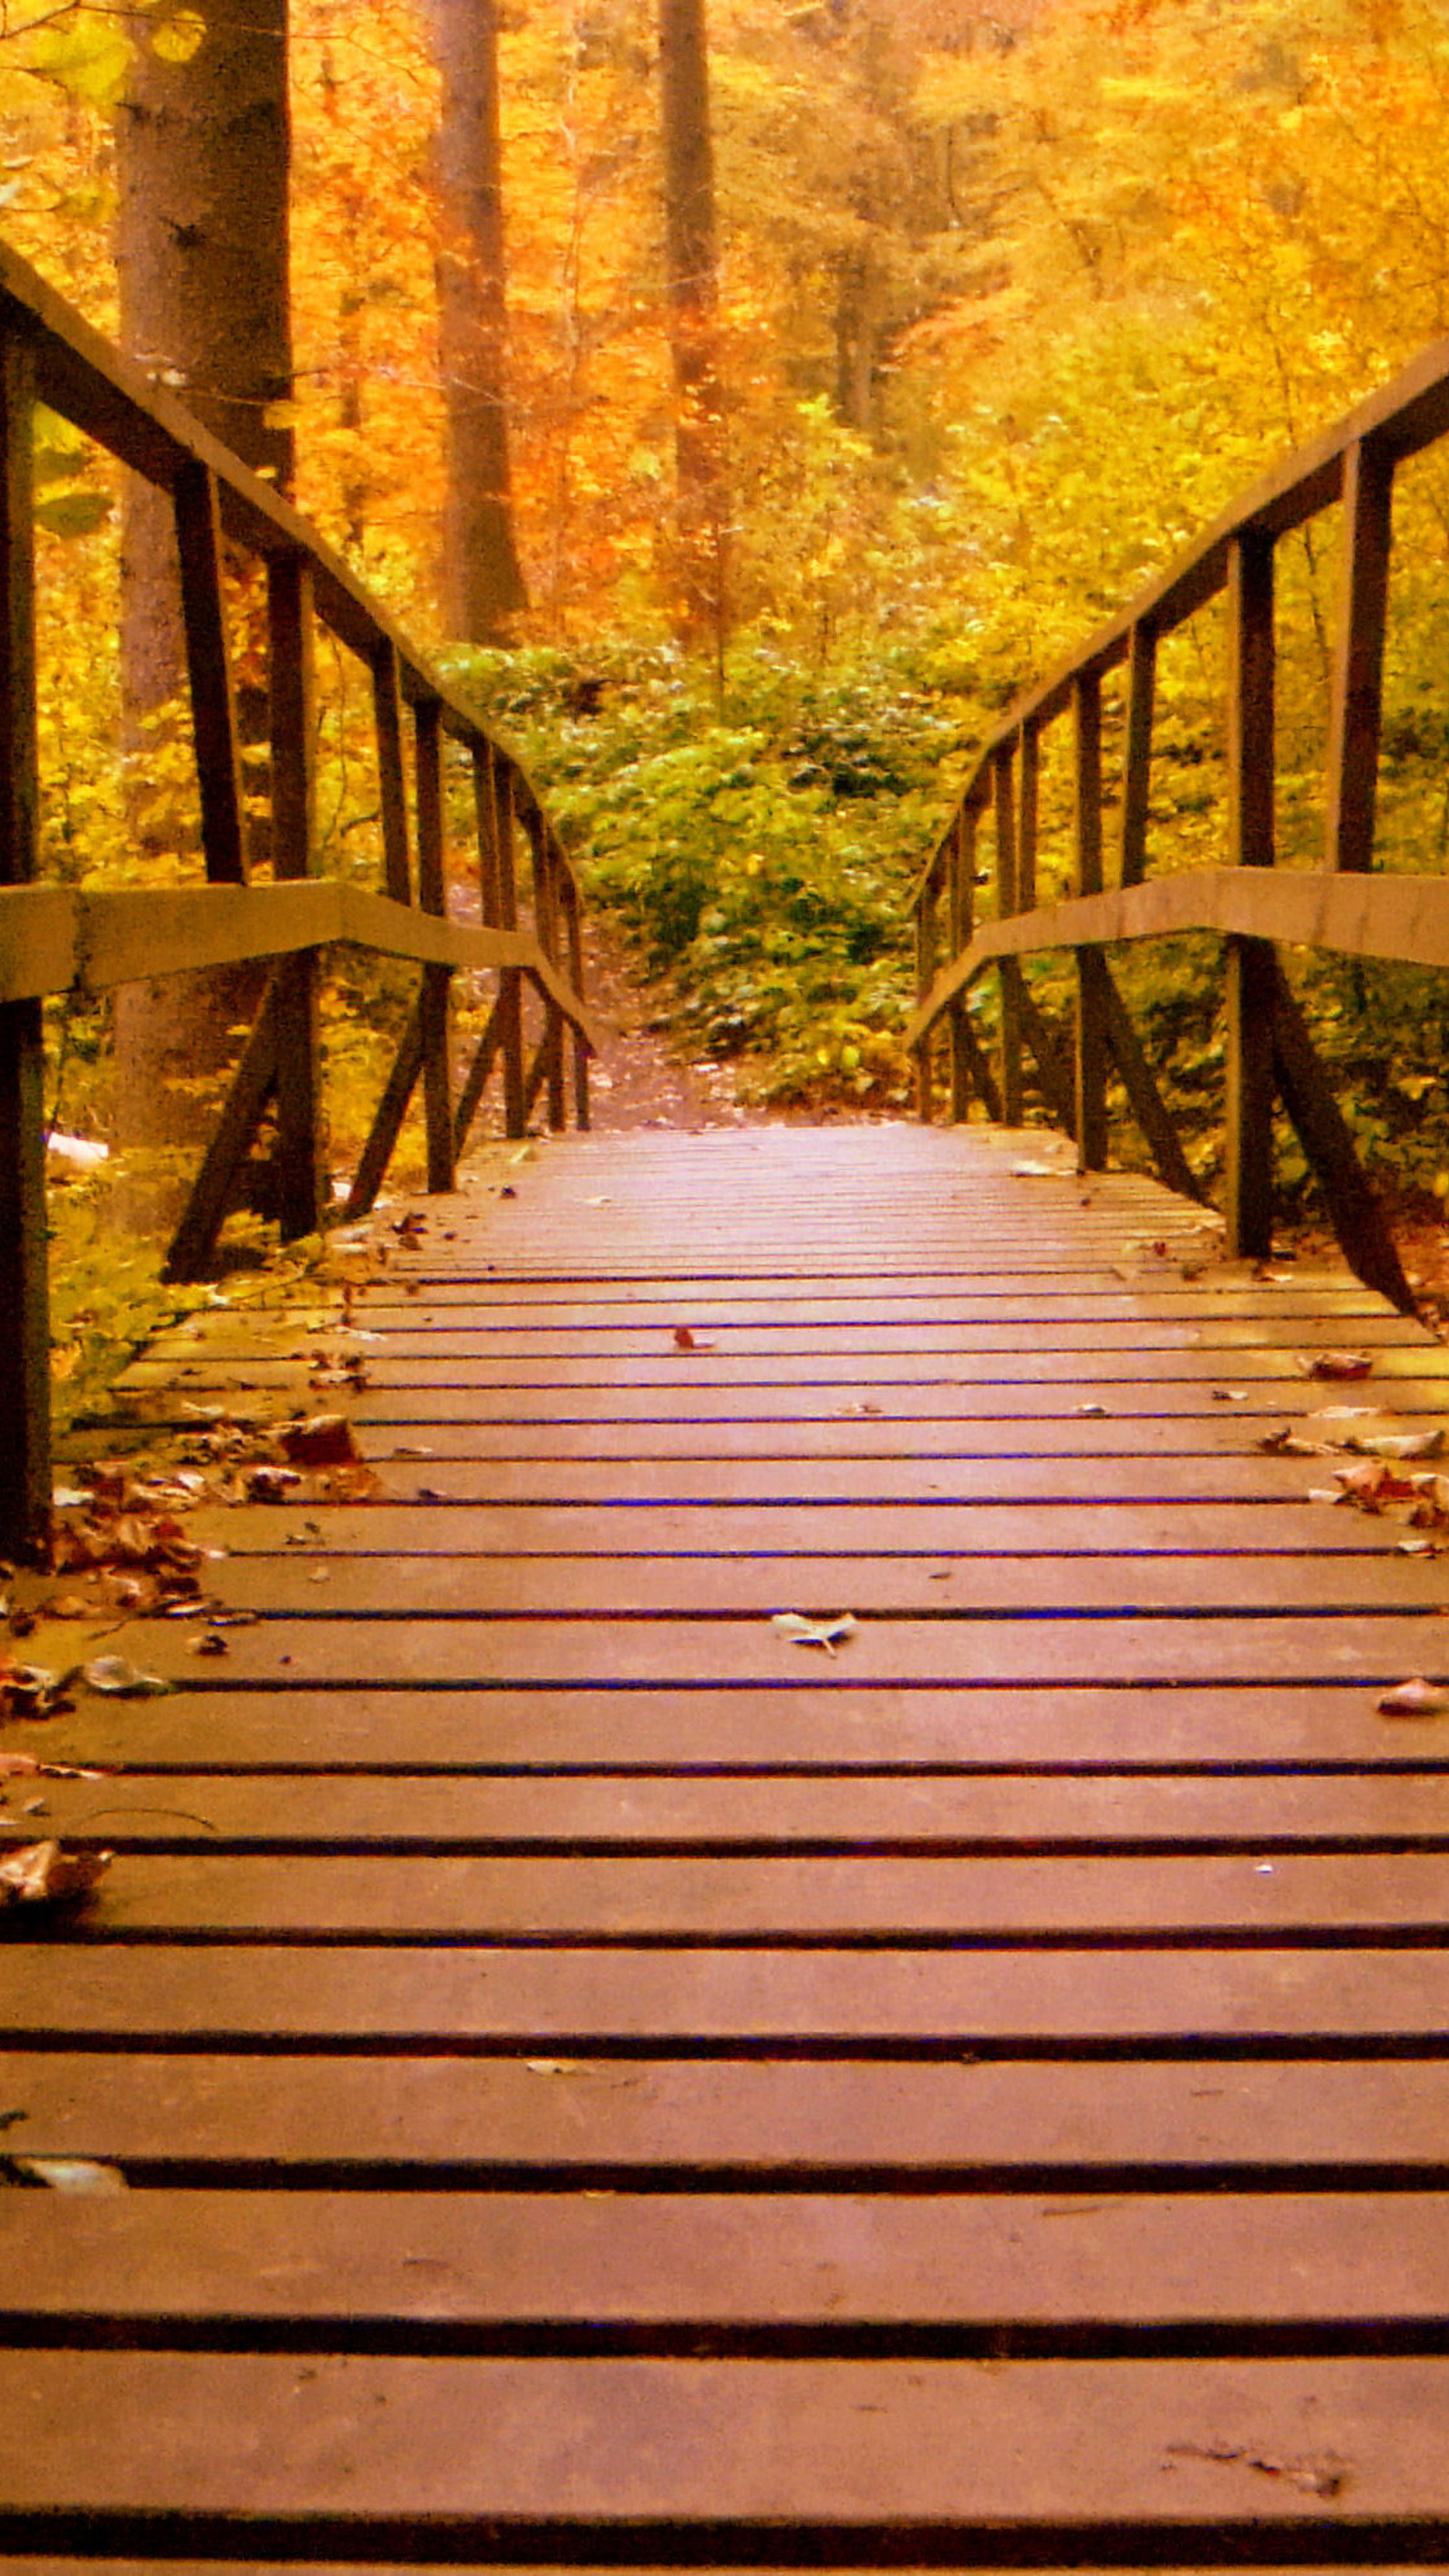 Autumn boardwalk bridge photo